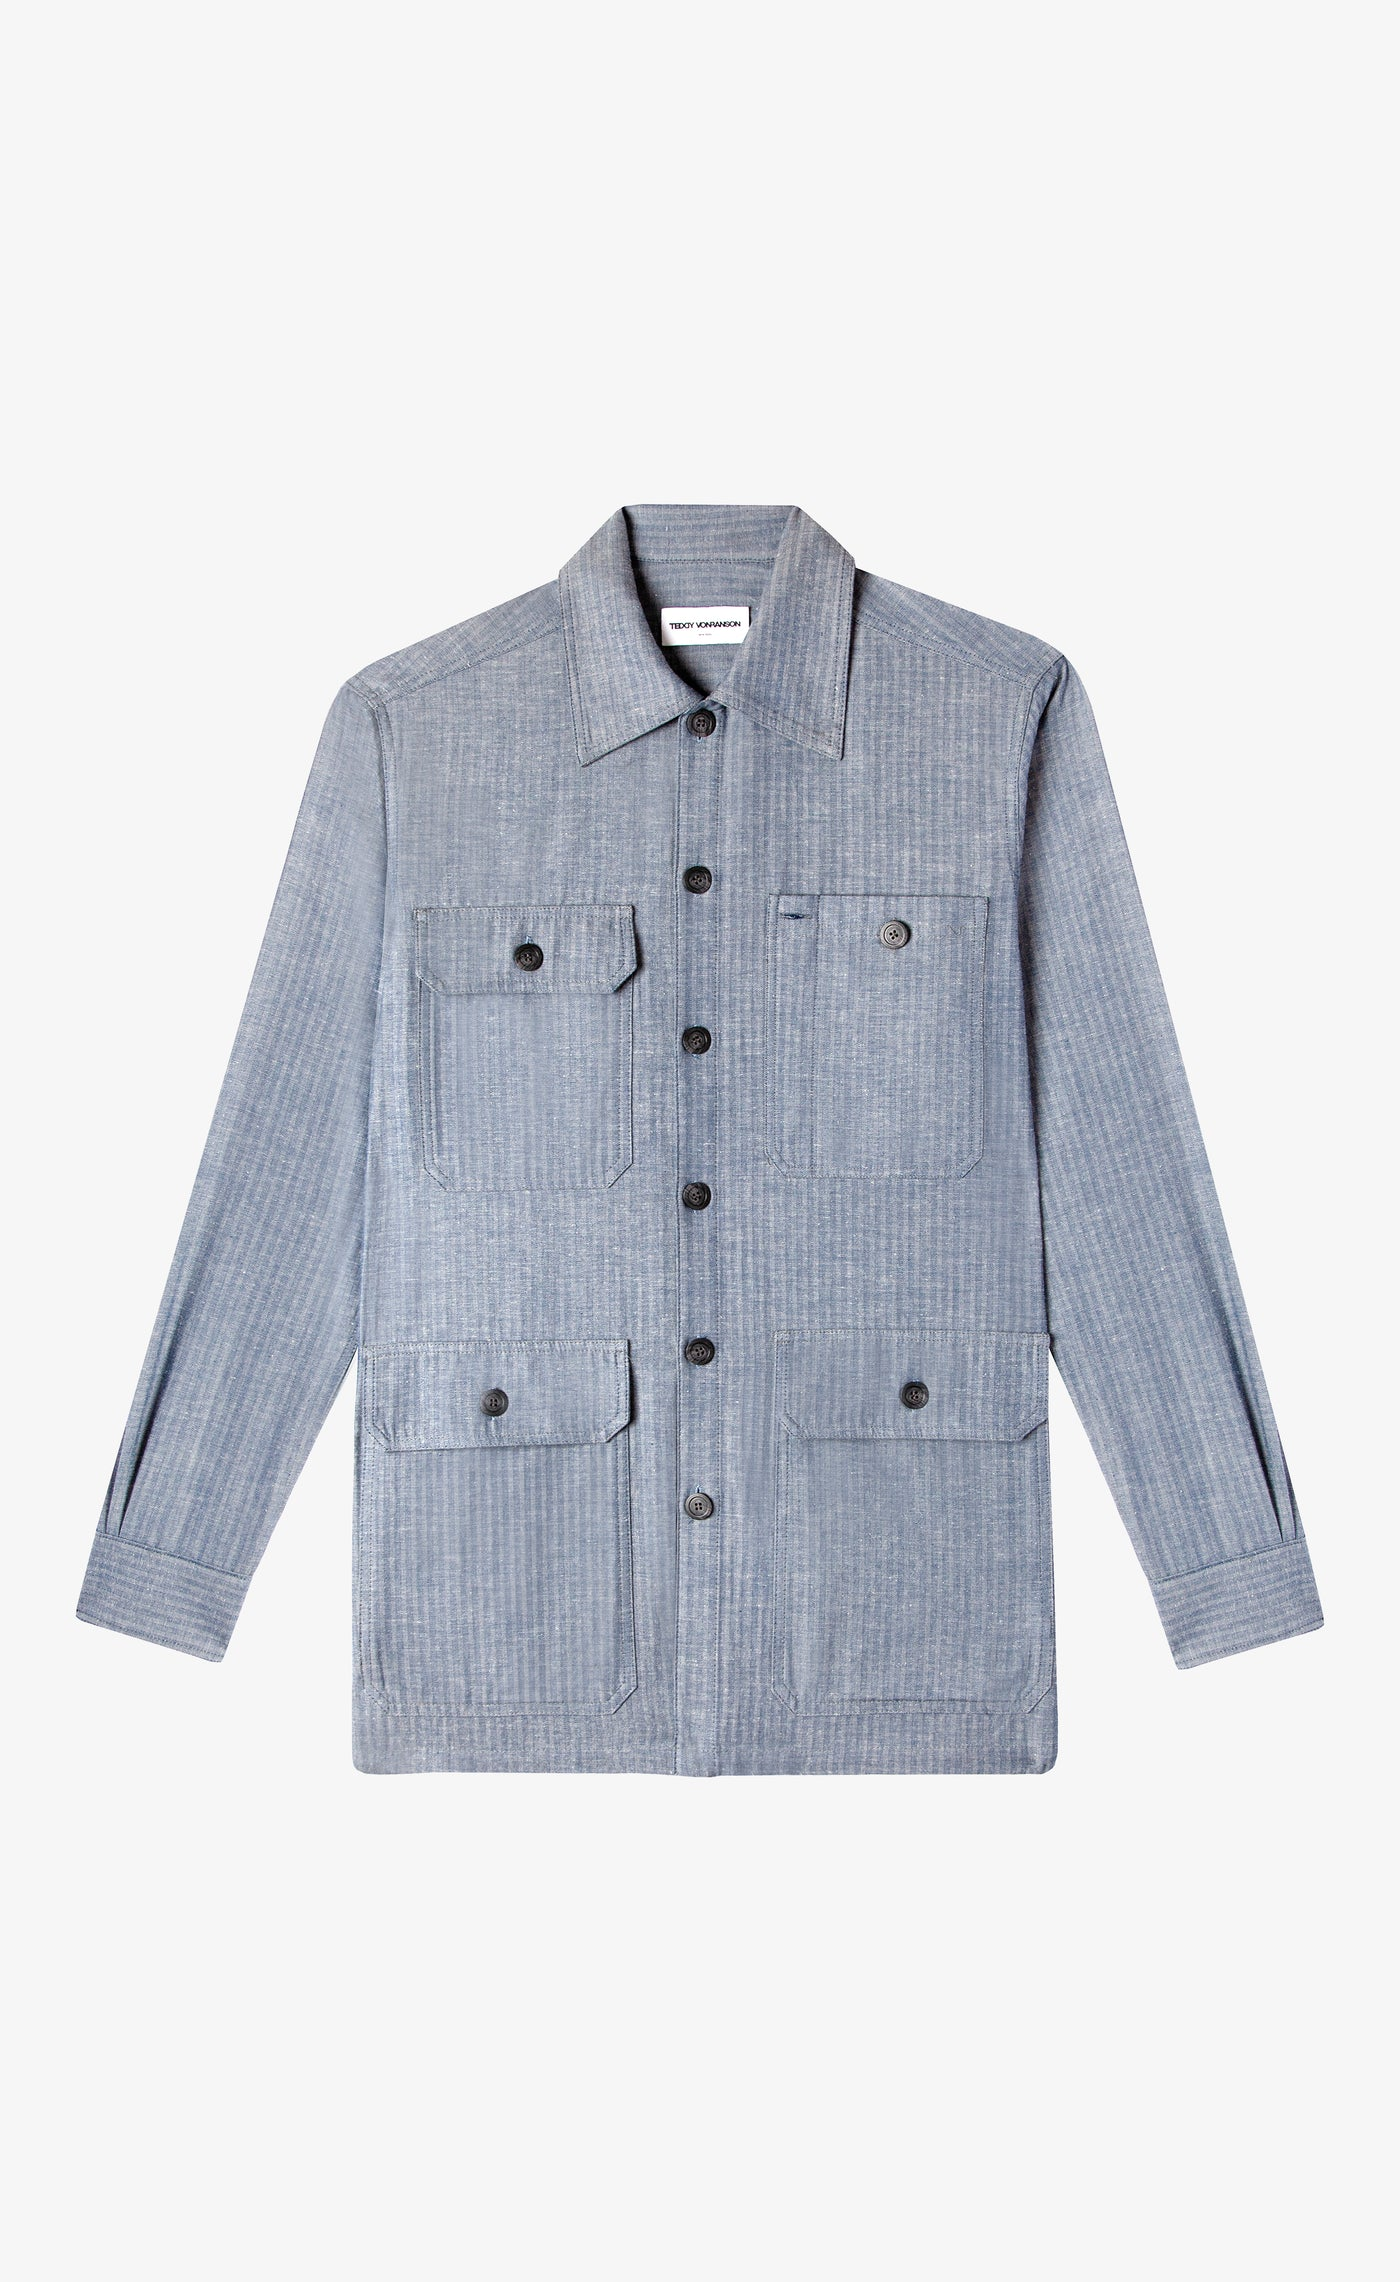 Jacob Work Wear Shirt Jacket